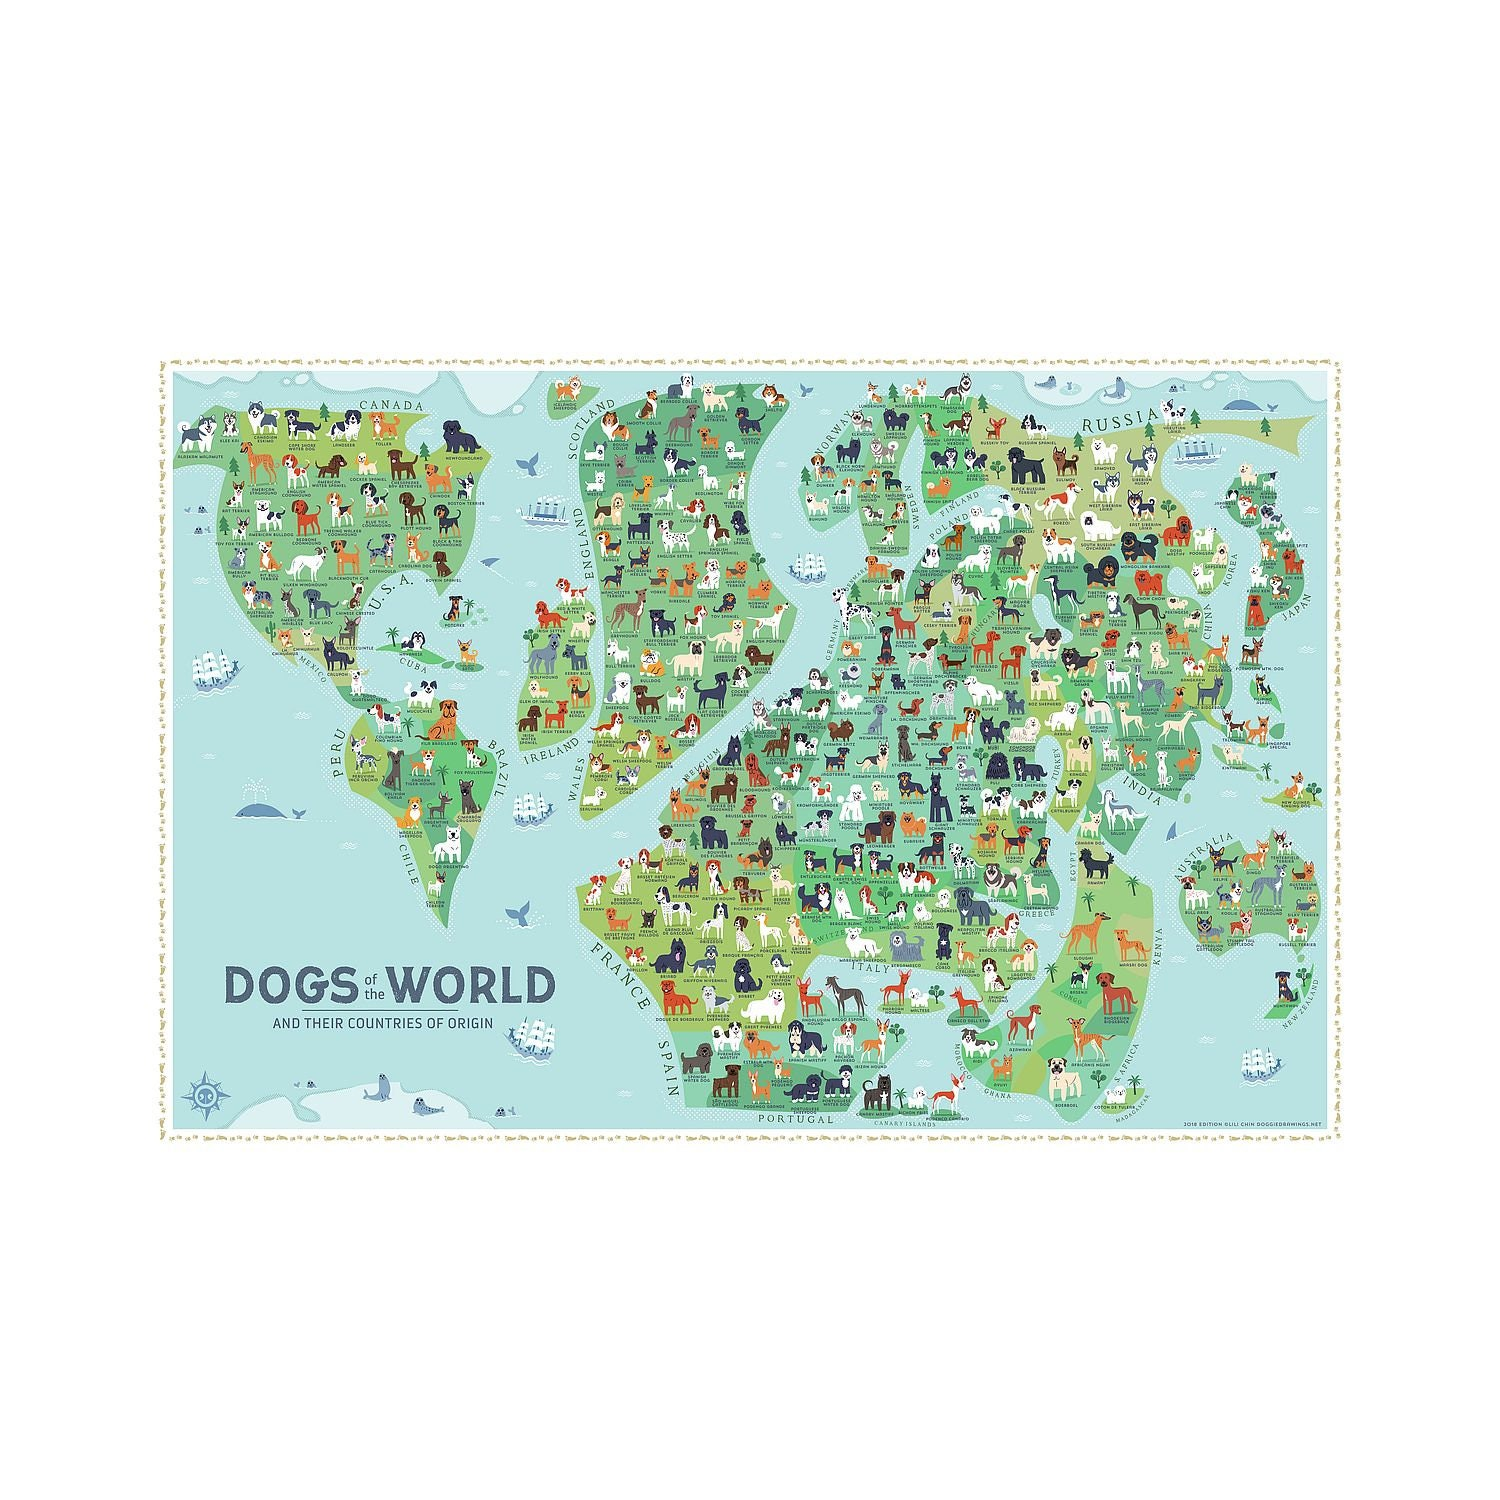 Dogs Of The World Map 36x24 Poster New Paper Etsy